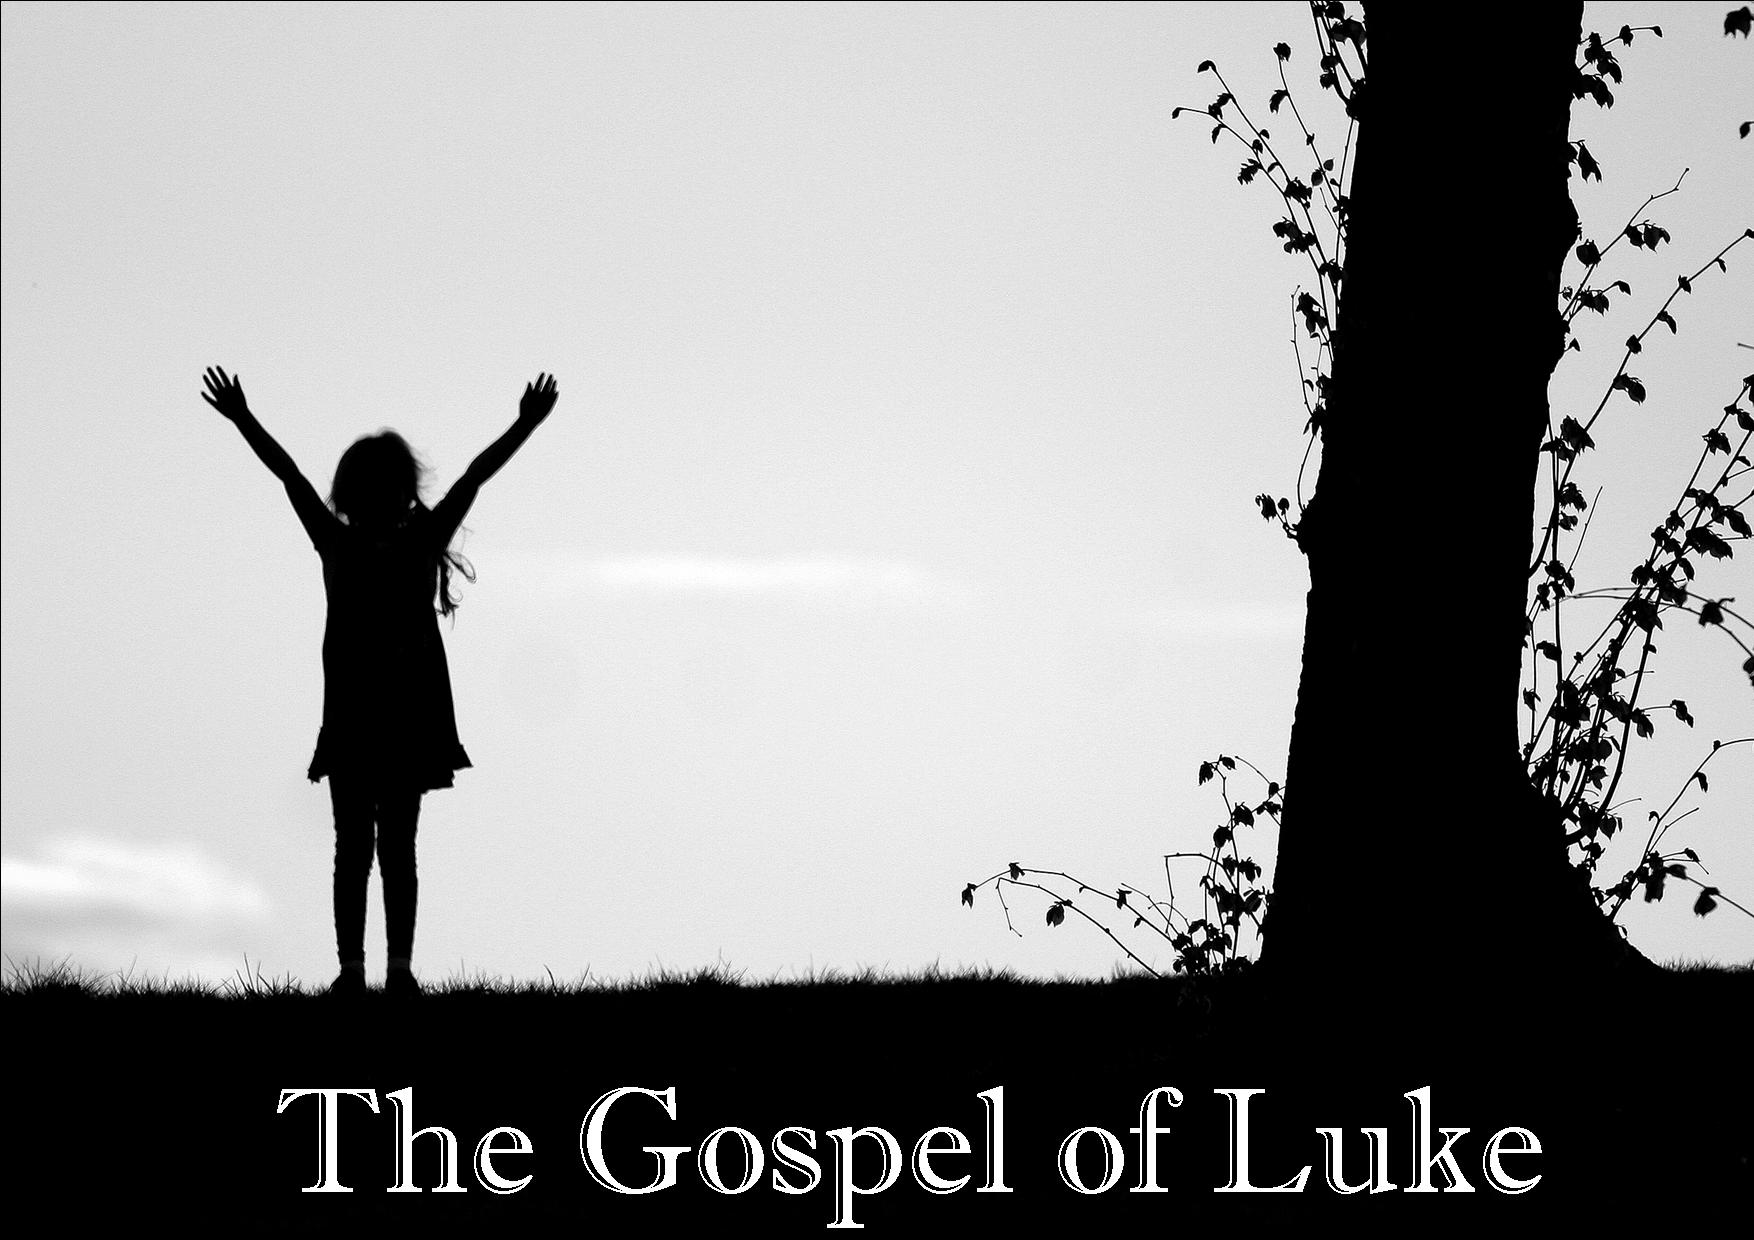 gospel of luke The gospel according to st luke 1:1 forasmuch as many have taken in hand to  draw up a narrative concerning those matters which have been fulfilled among.